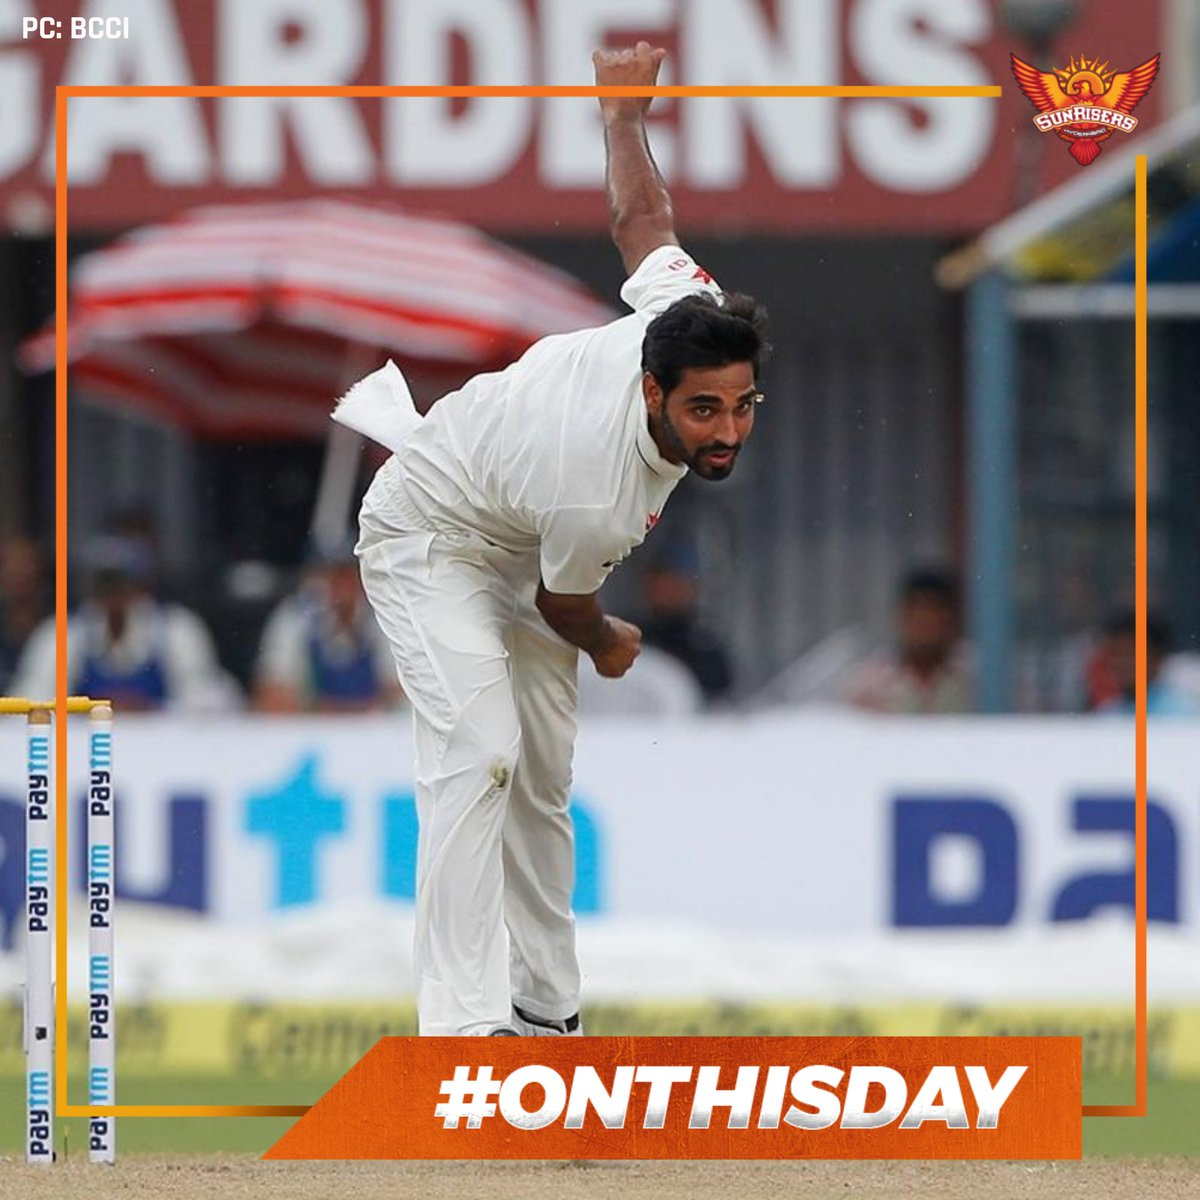 #OnThisDay in 2013, a 23-year old @BhuviOfficial made his Test debut for  against  in Chennai! #TeamIndia won the 4-match Test series 4-0! #OTD #OrangeArmypic.twitter.com/PX4FoI1uZq